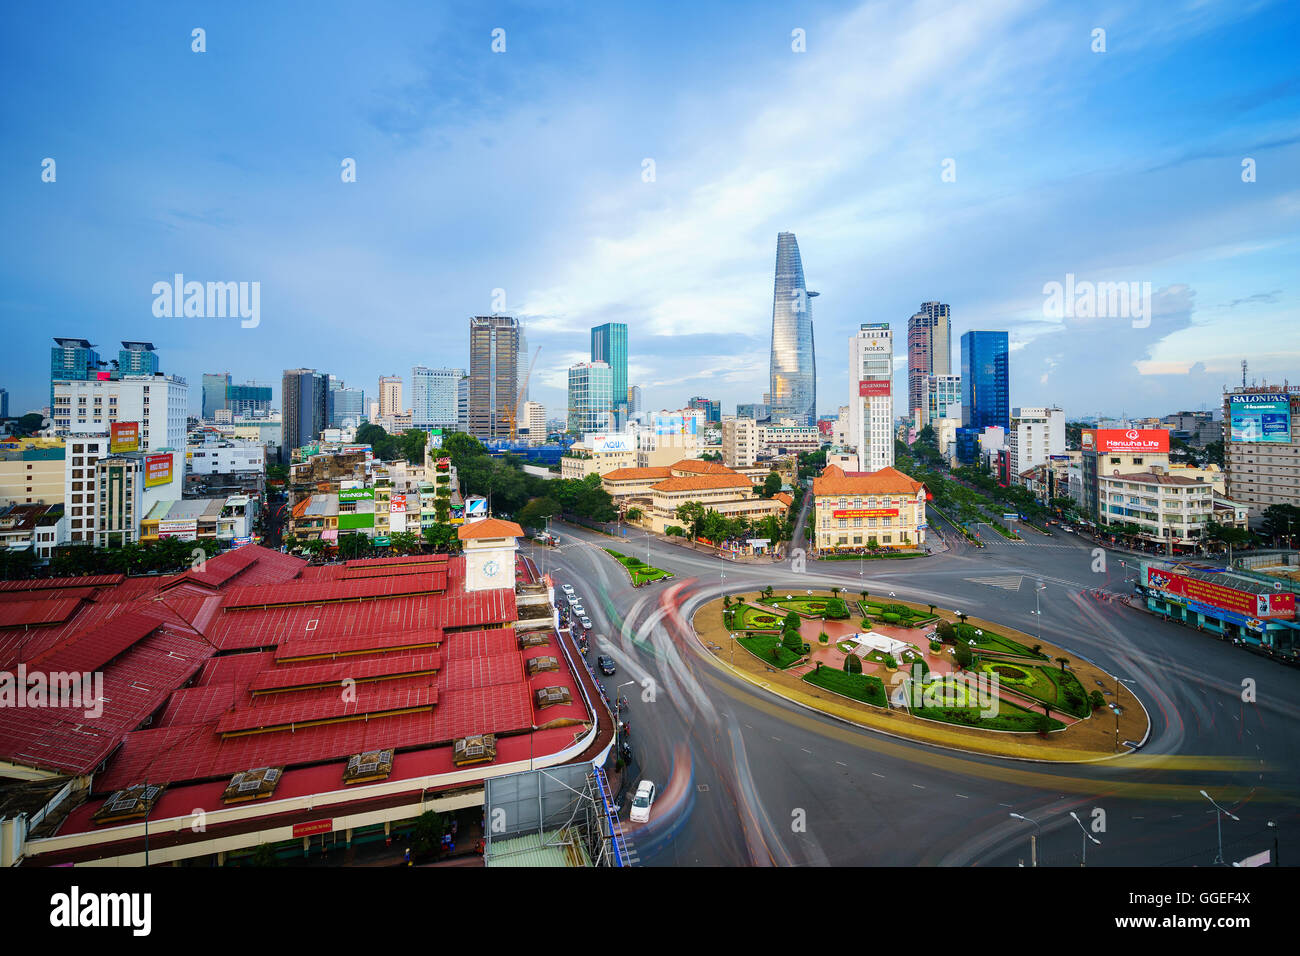 Impression, colorful, vibrant scene of Asia traffic, dynamic, crowded city with trail on street, Saigon, Vietnam Stock Photo